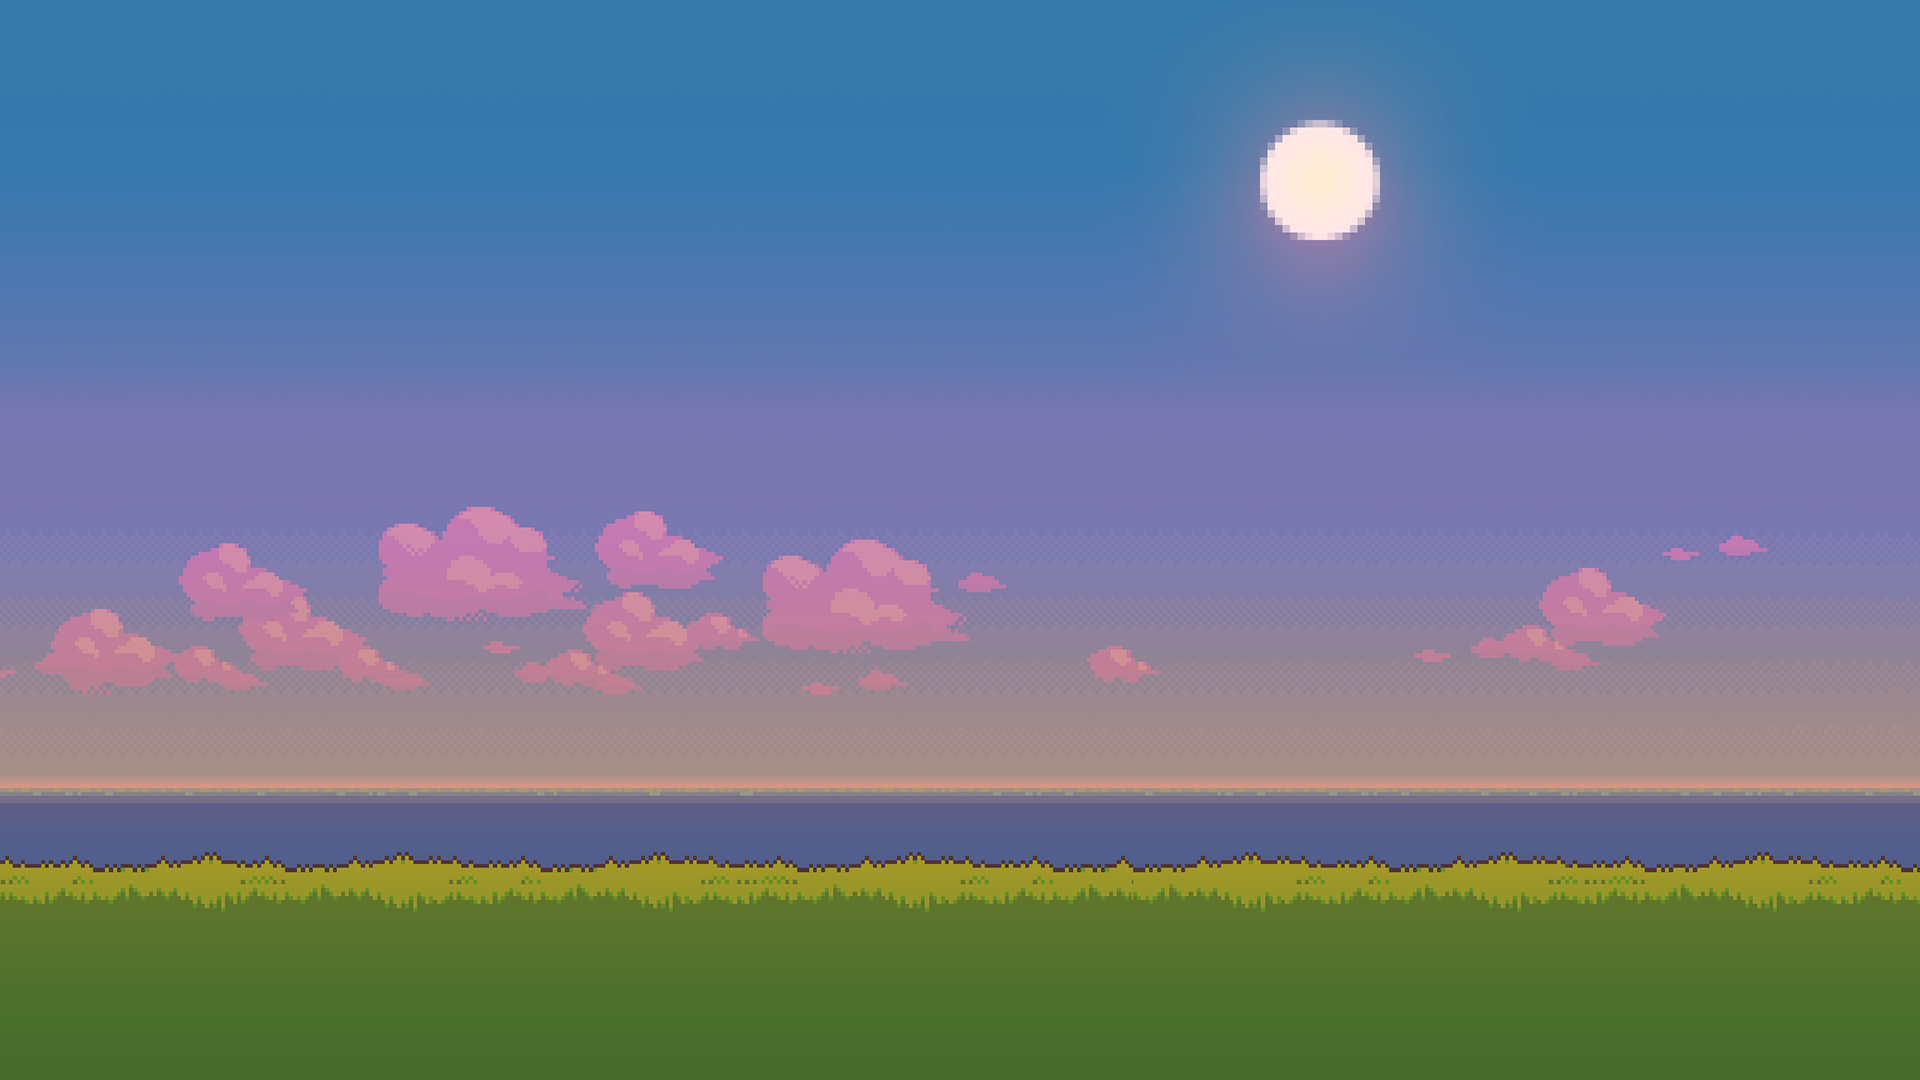 Pixel Art Landscapes | Pixel art background and Game concept